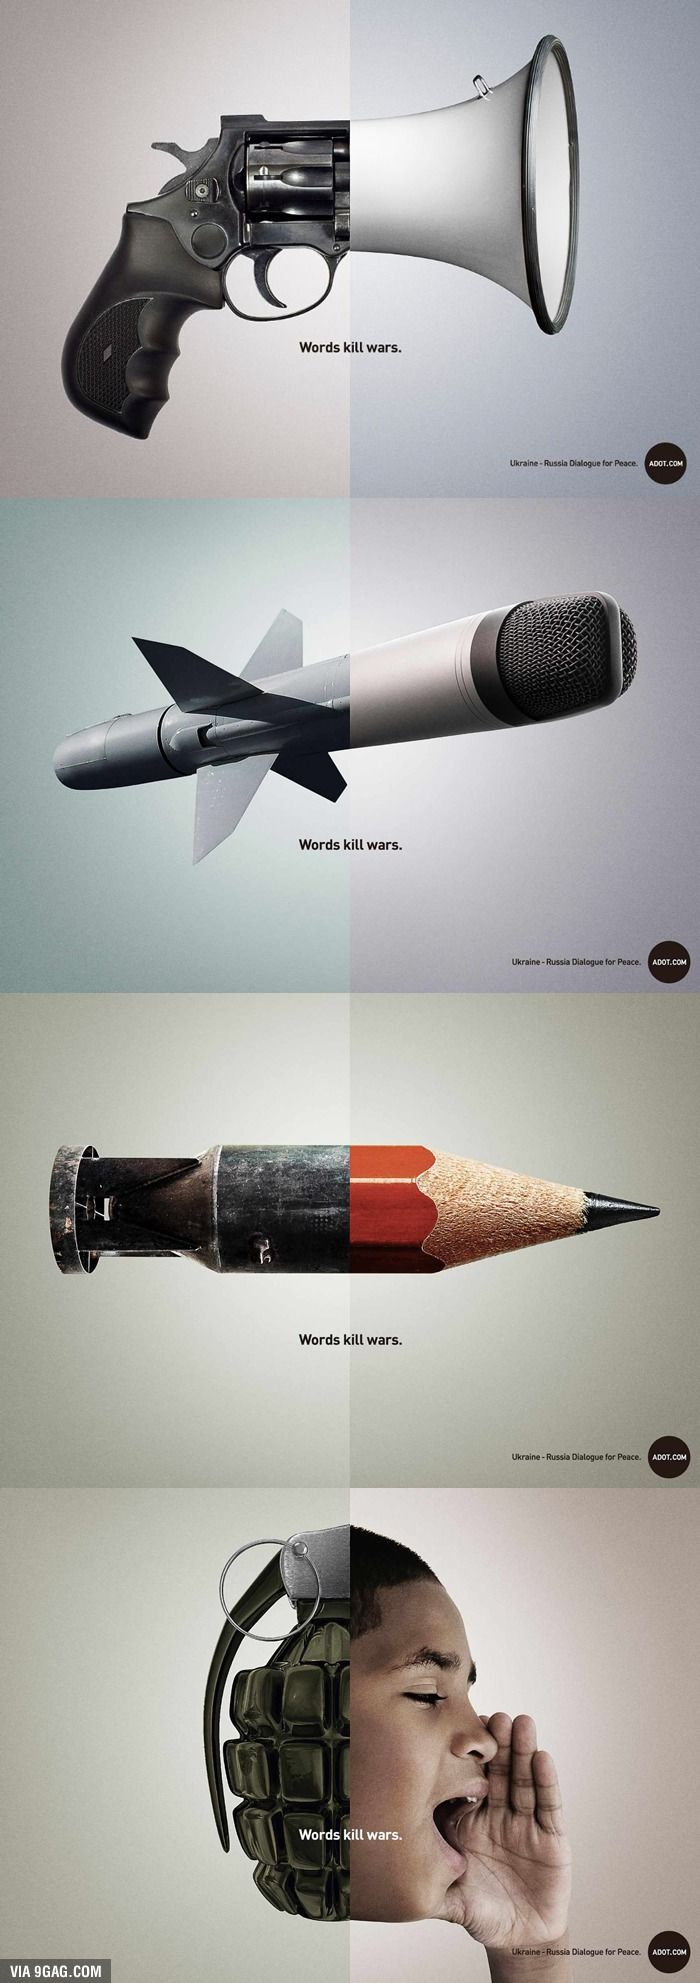 awesome Creative Ads: Words kill wars.